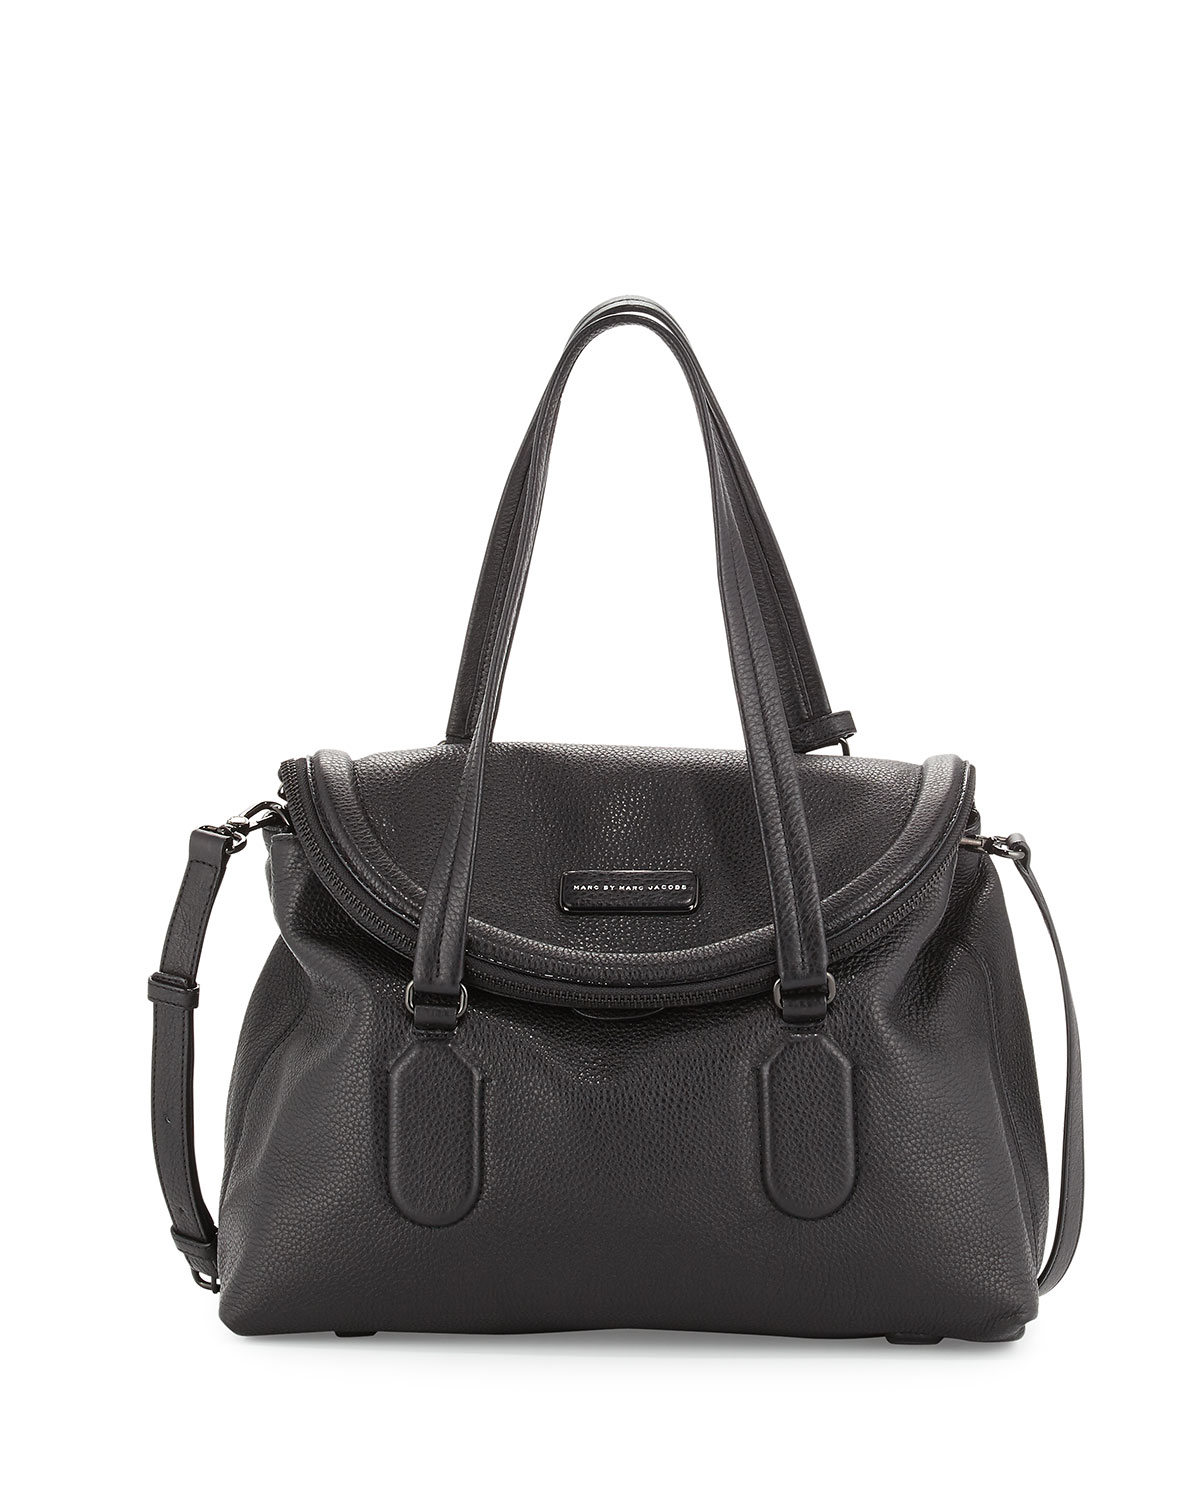 75cc5b6f9e MARC by Marc Jacobs Silicone Valley Satchel Bag, Black | Neiman Marcus